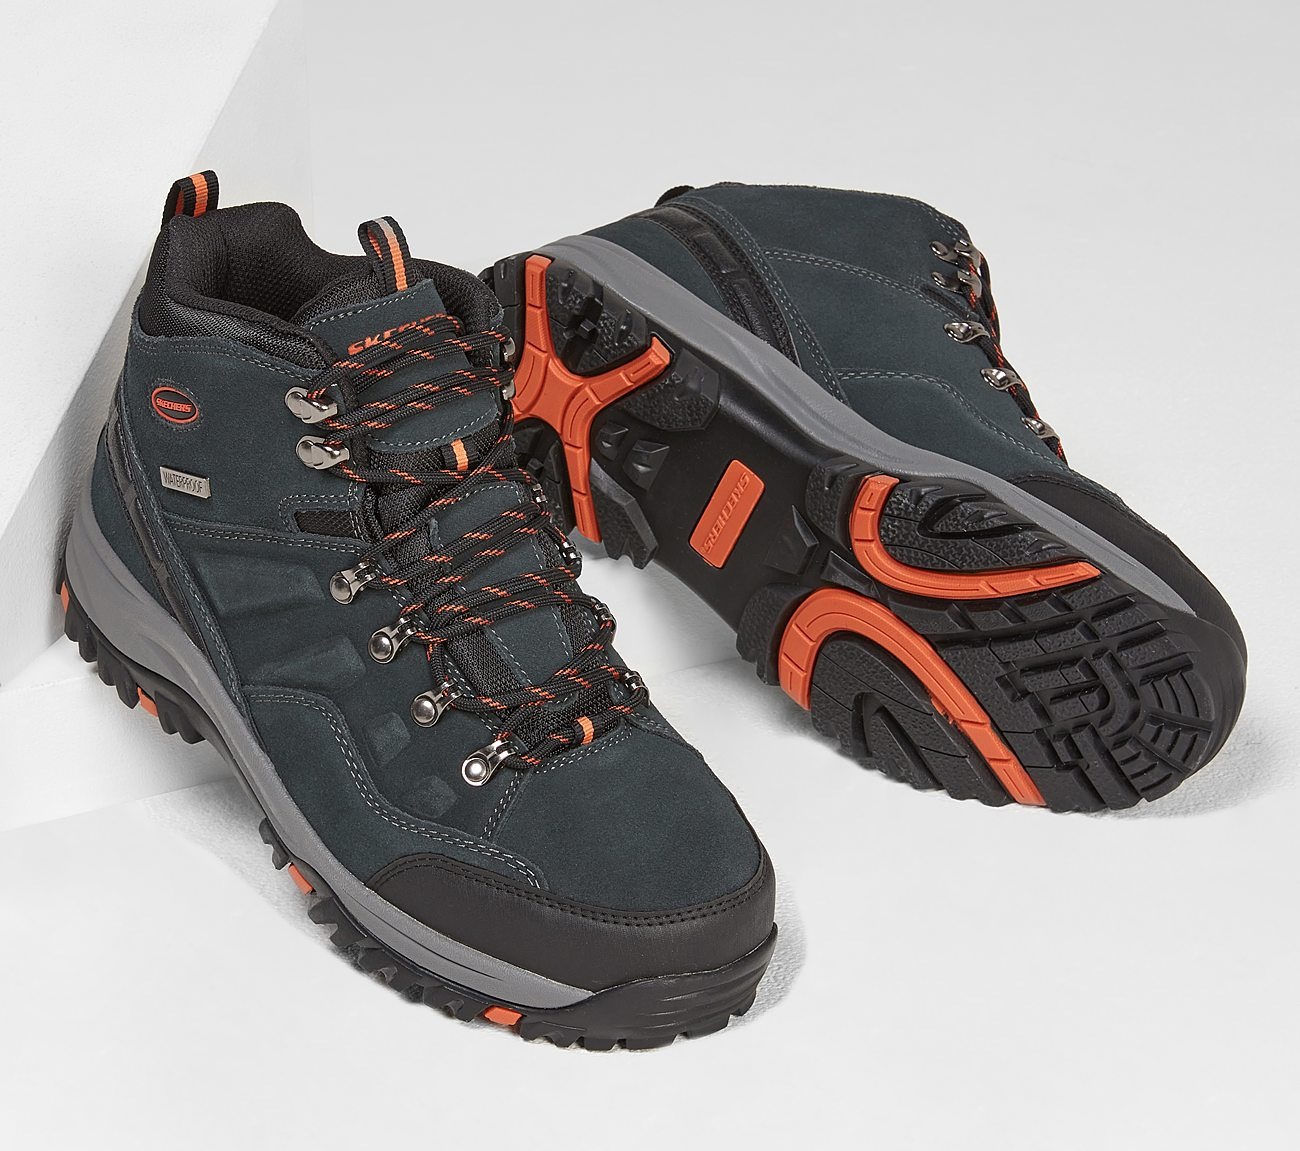 Skechers Men's Relaxed Fit Relment Pelmo Waterproof Hiking Boot